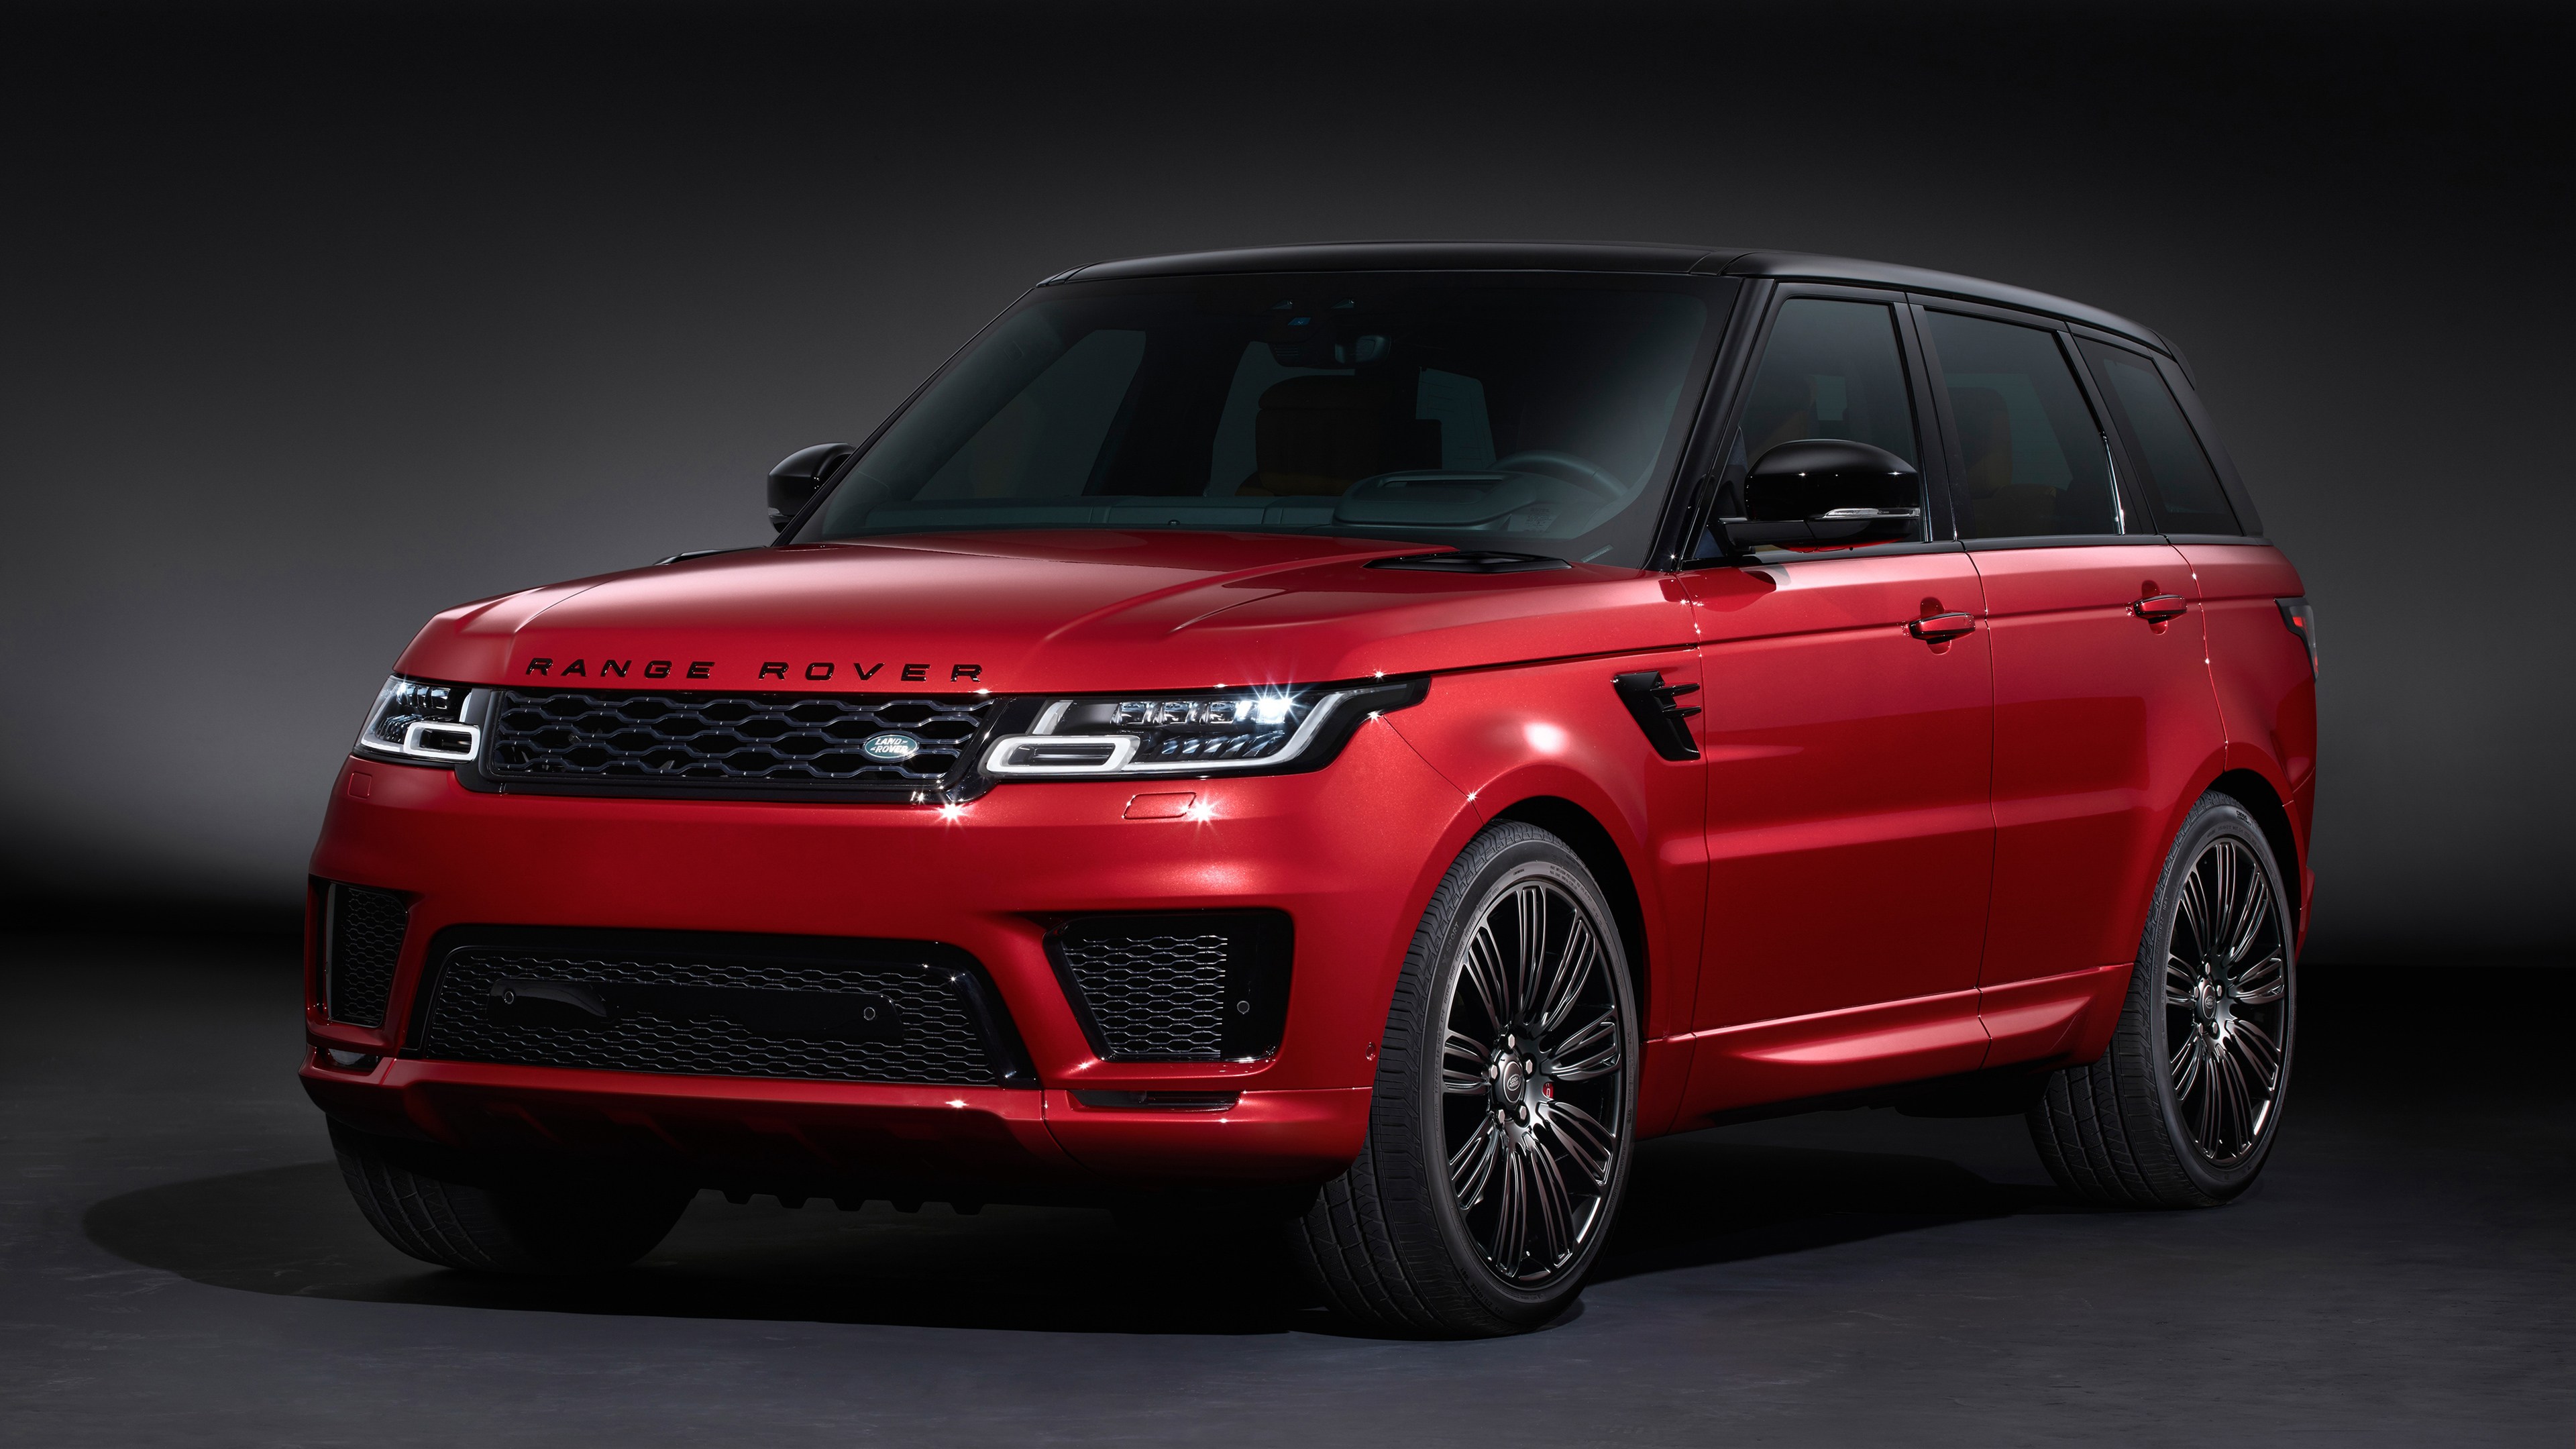 3840x2160 - Range Rover Wallpapers 9